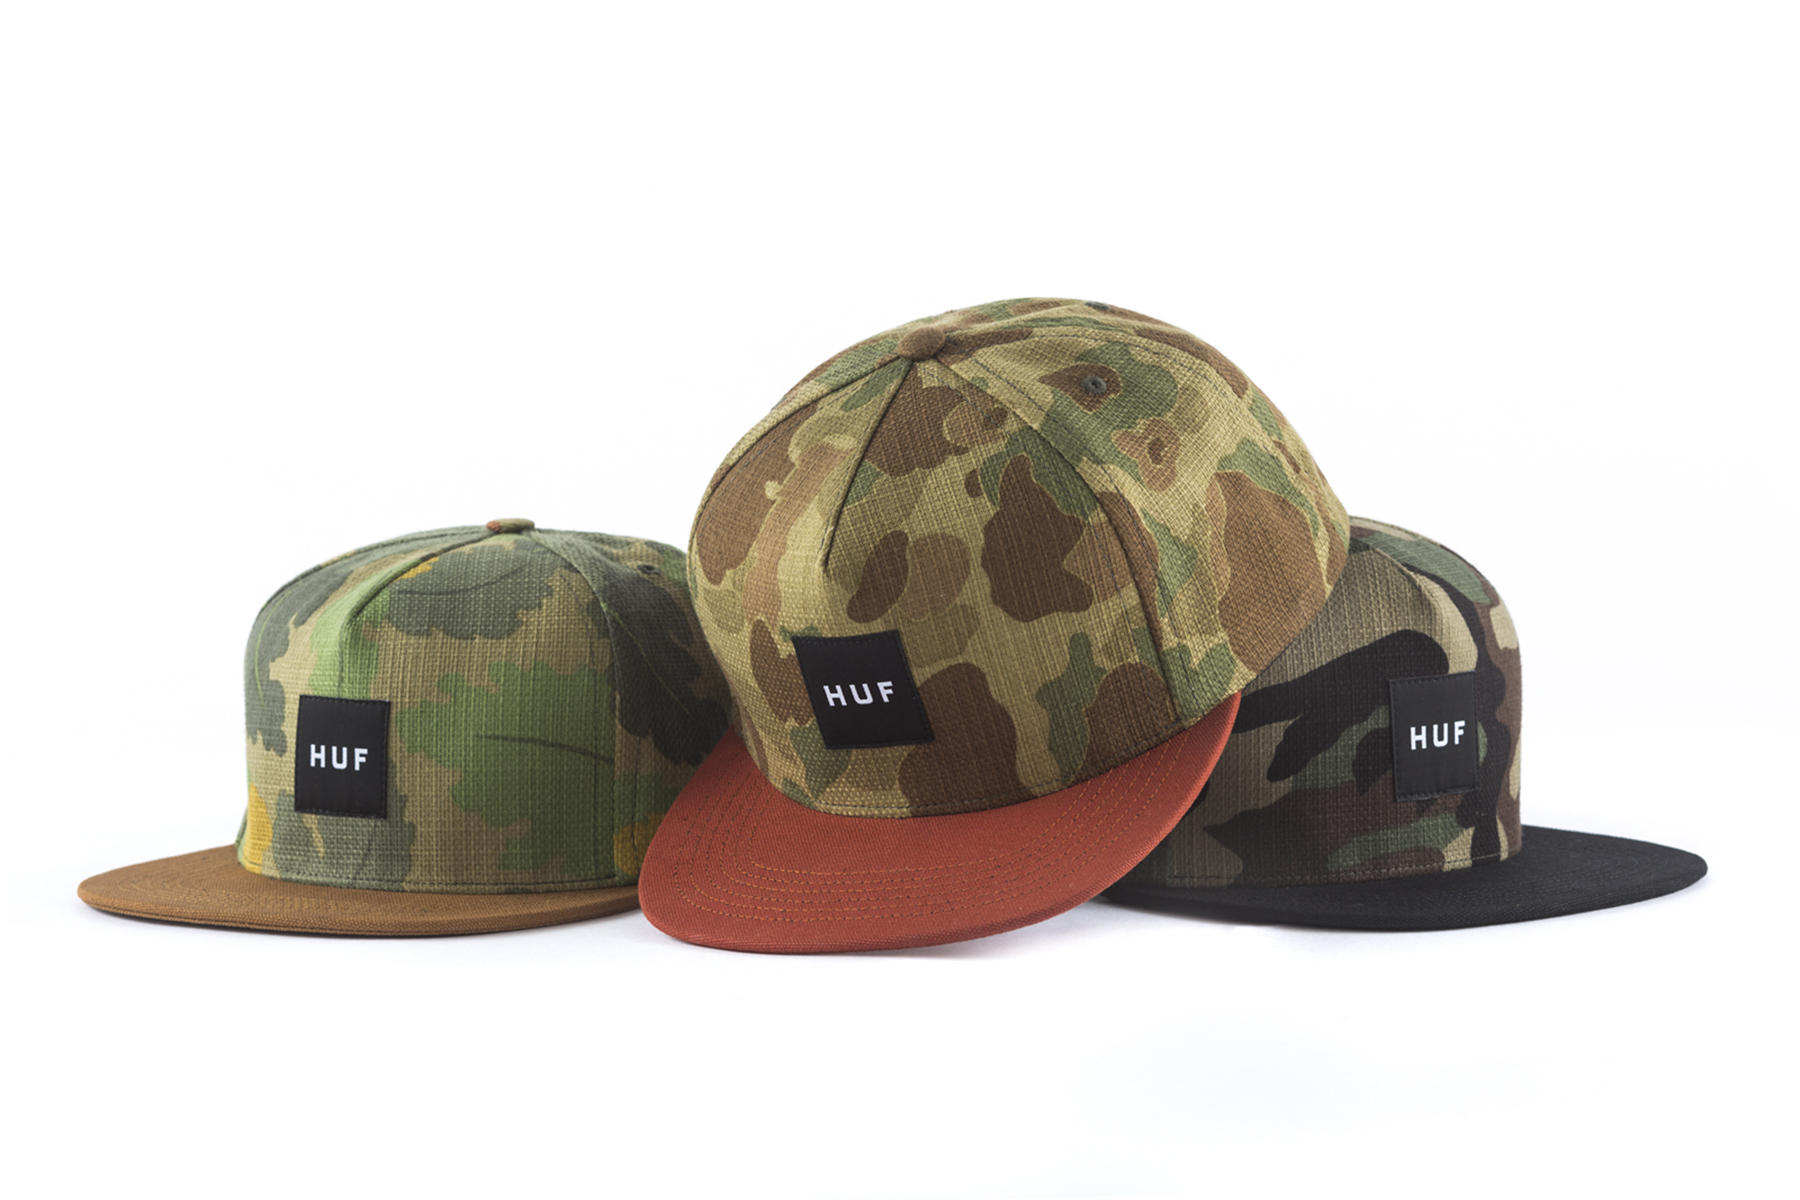 http://hypebeast.com/2014/6/huf-2014-spring-summer-headwear-collection